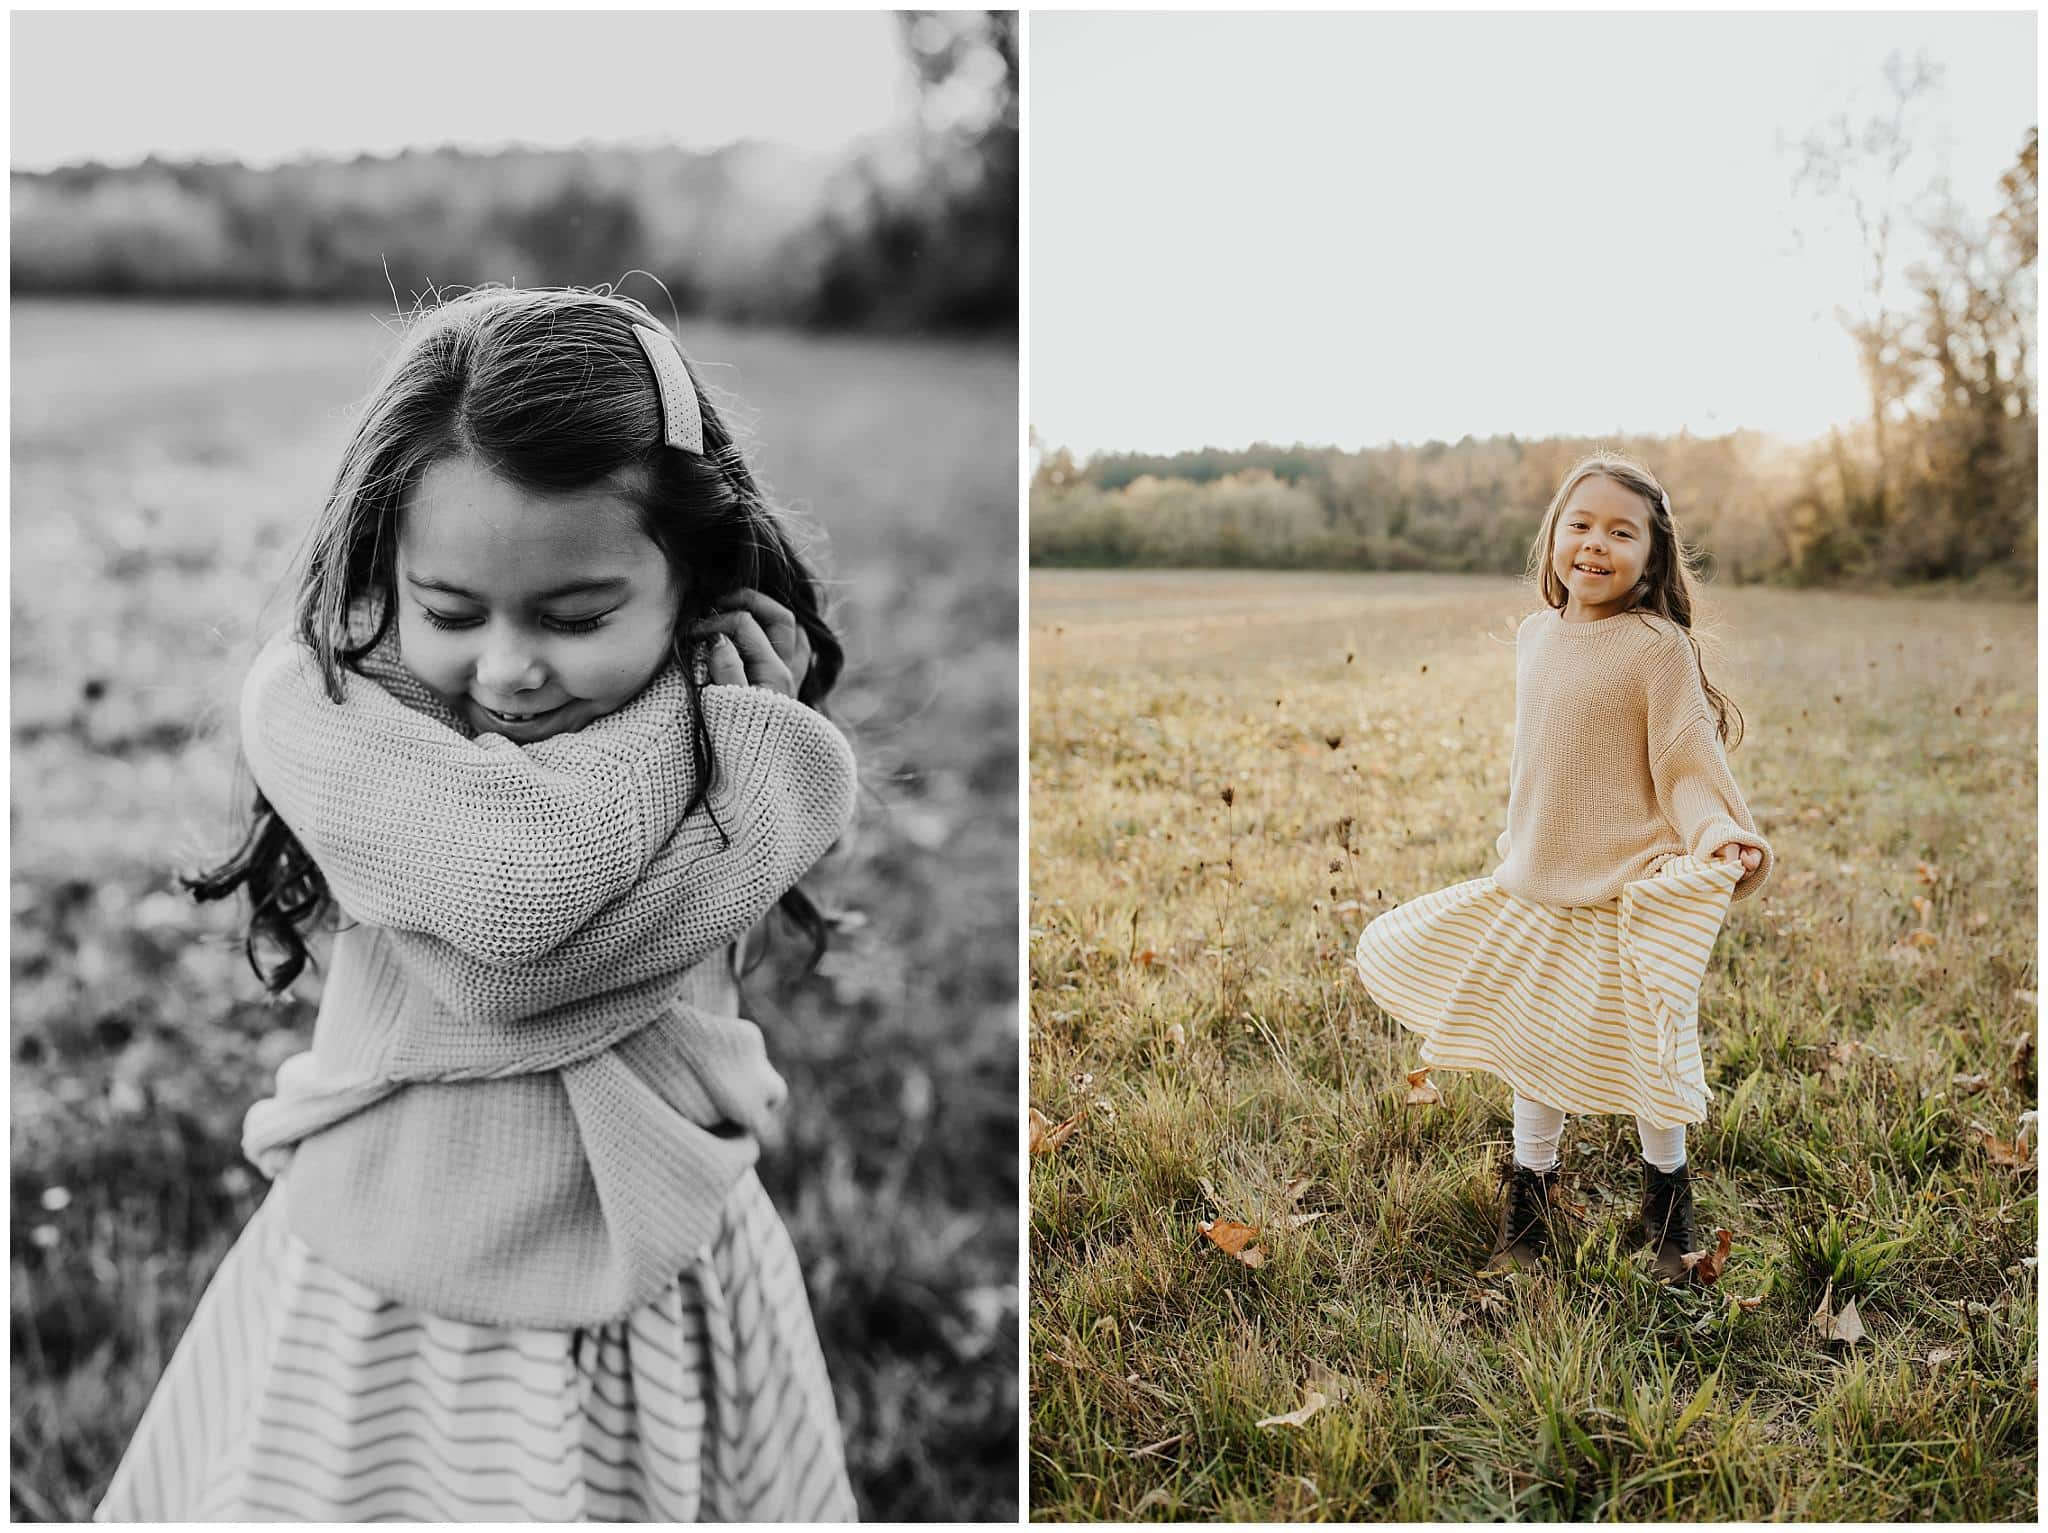 Photos of 7-year-old-girl - candid family photos